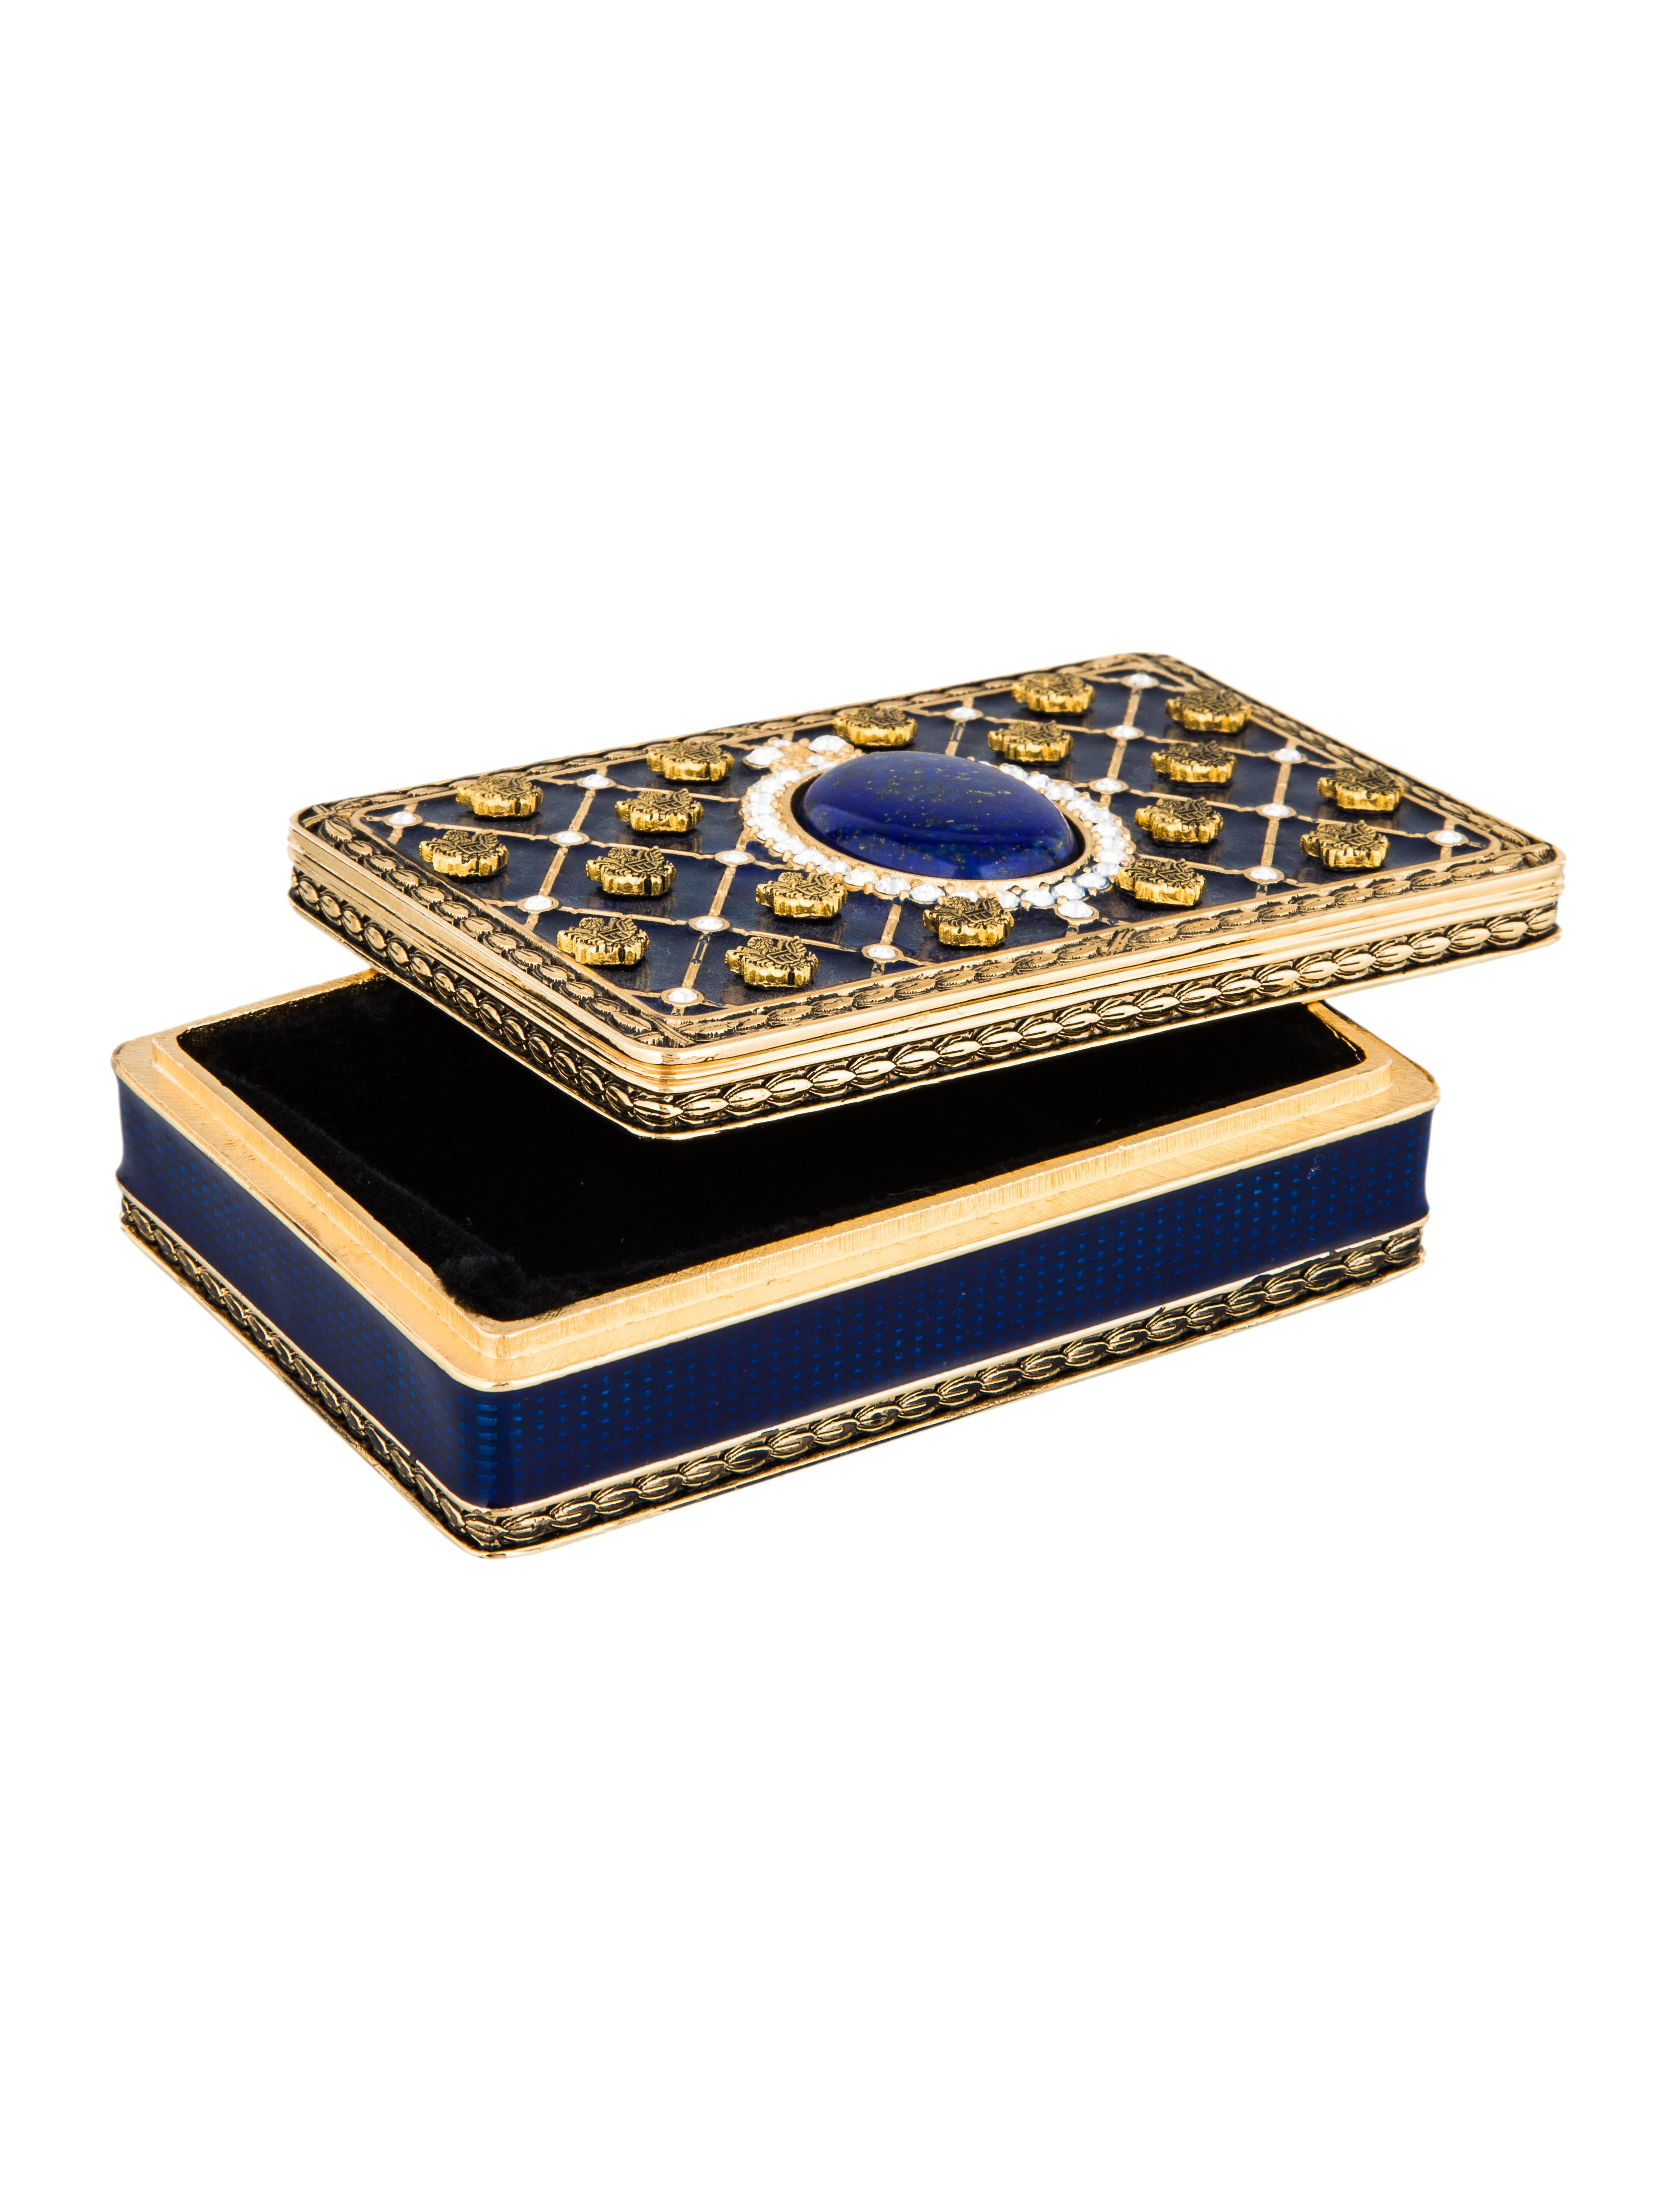 Ann Hand Embellished Jewelry Box Decor And Accessories